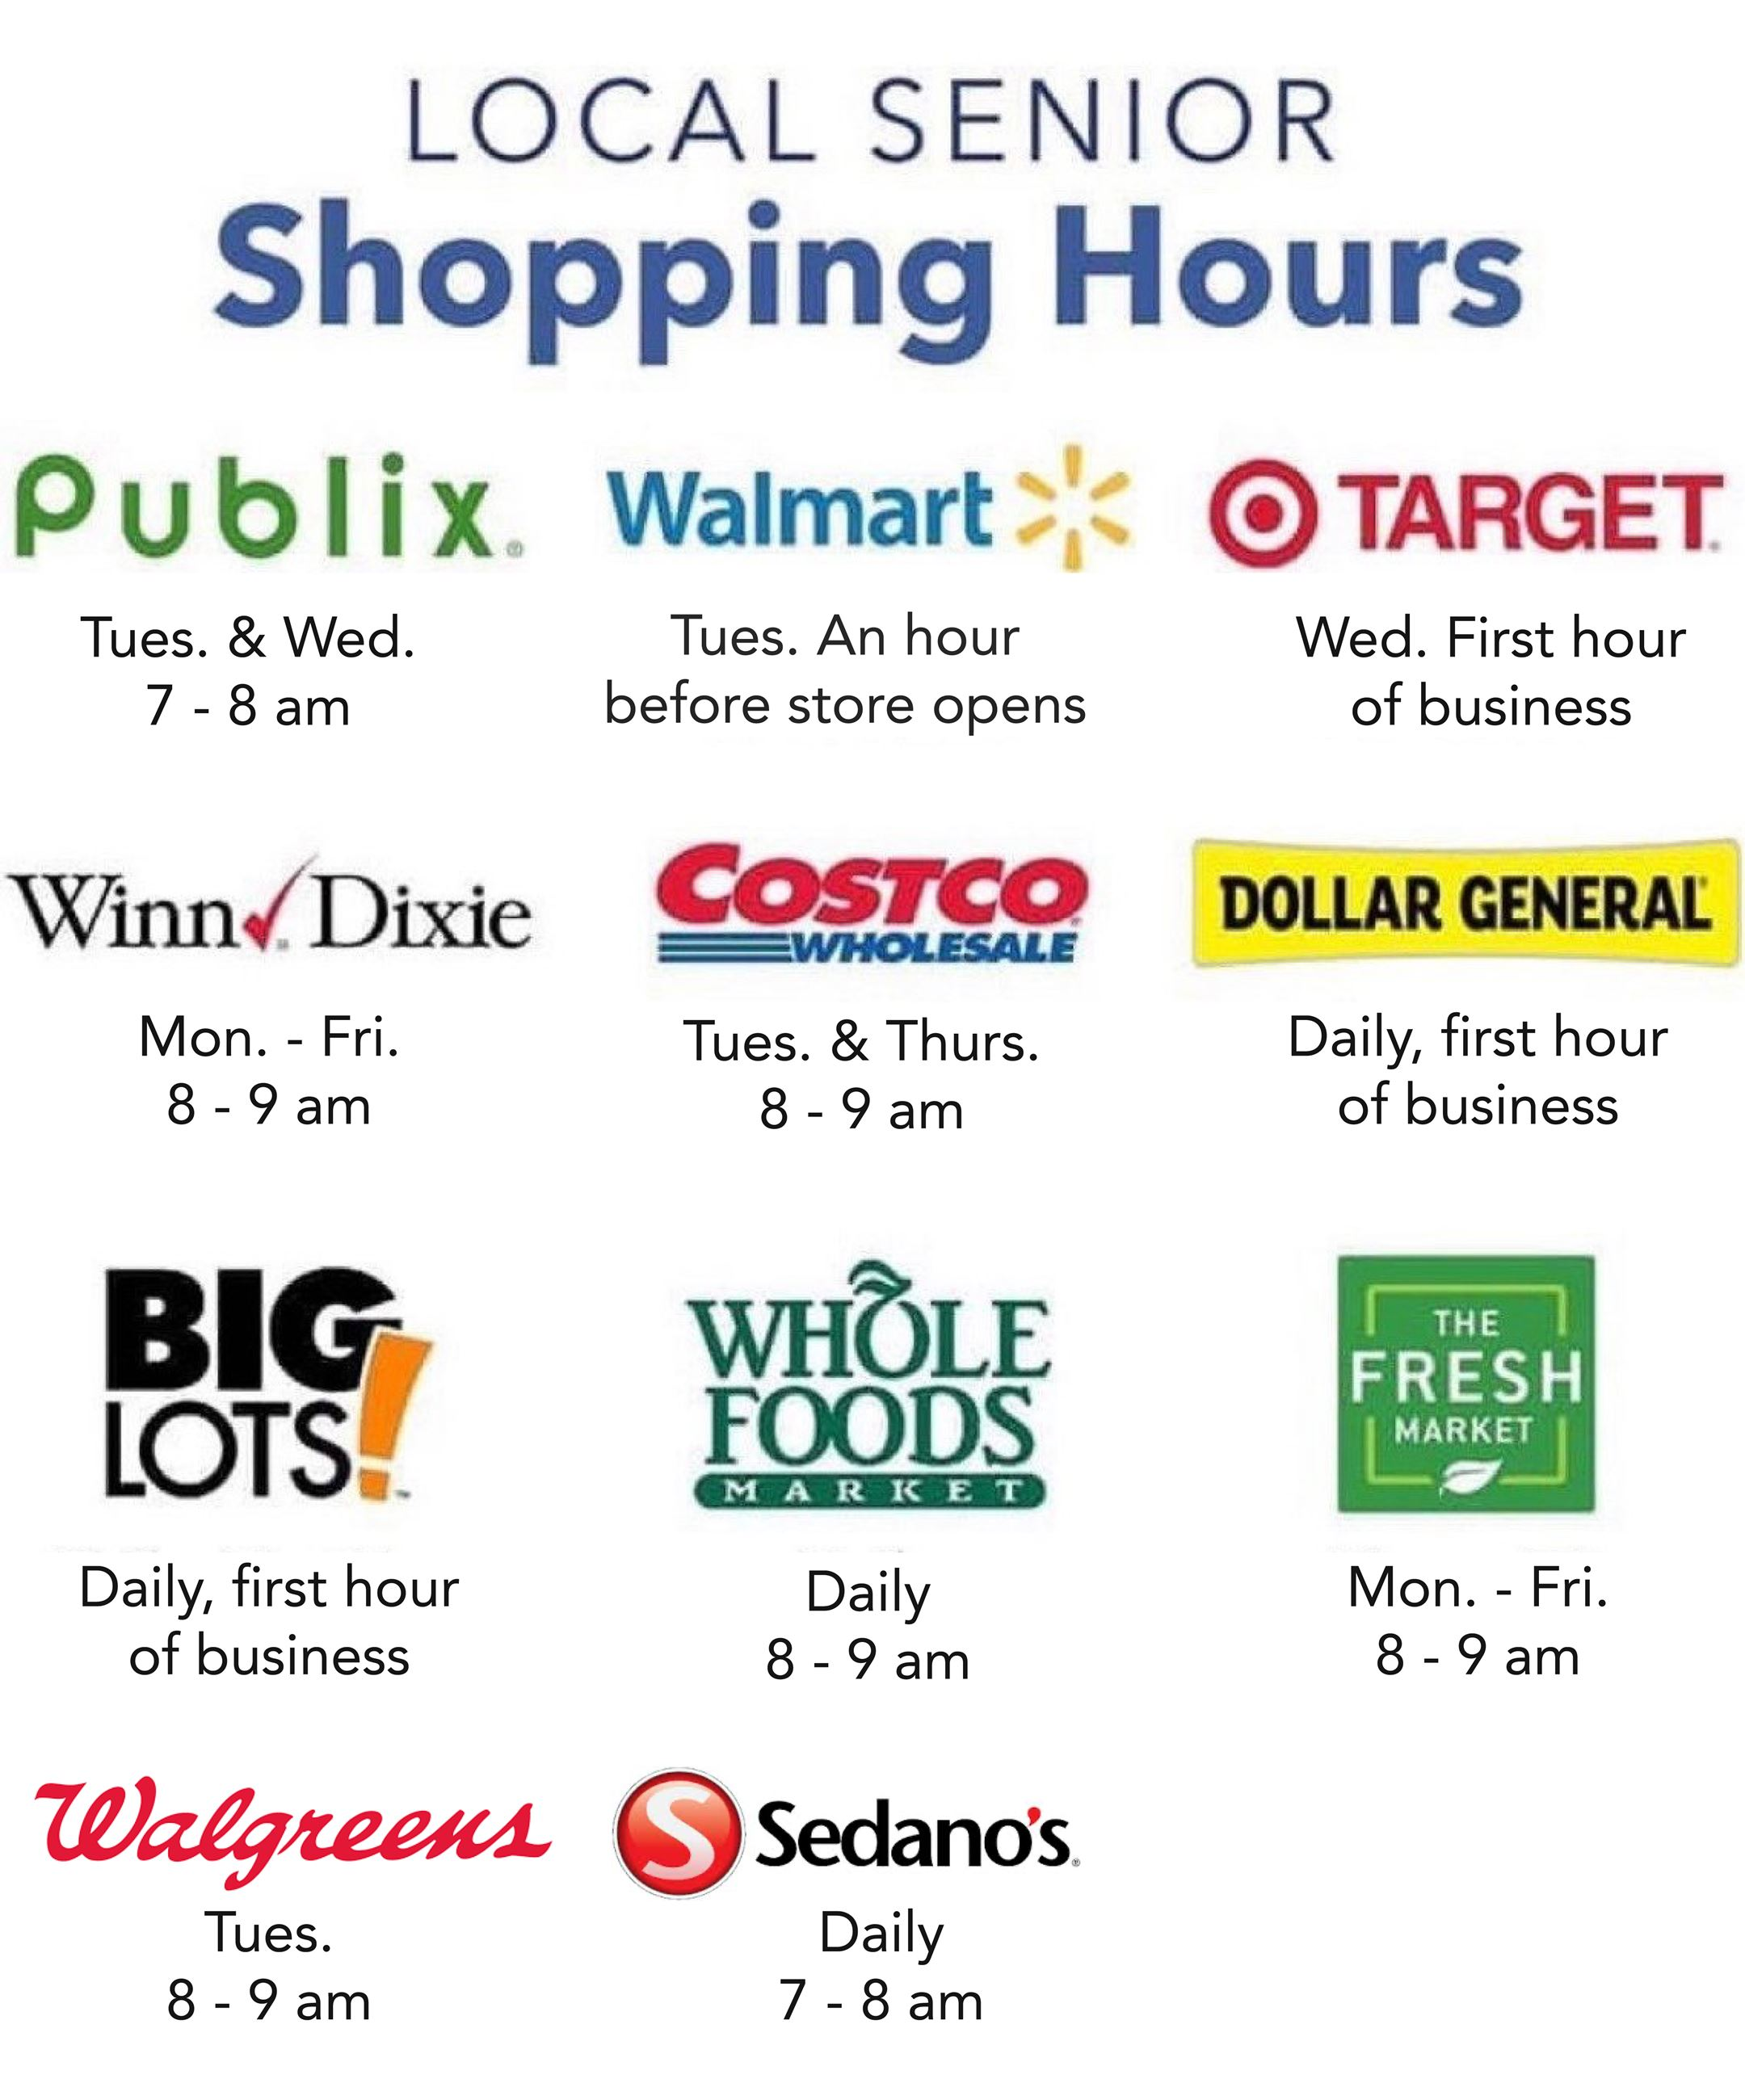 Local Senior Shopping Hours